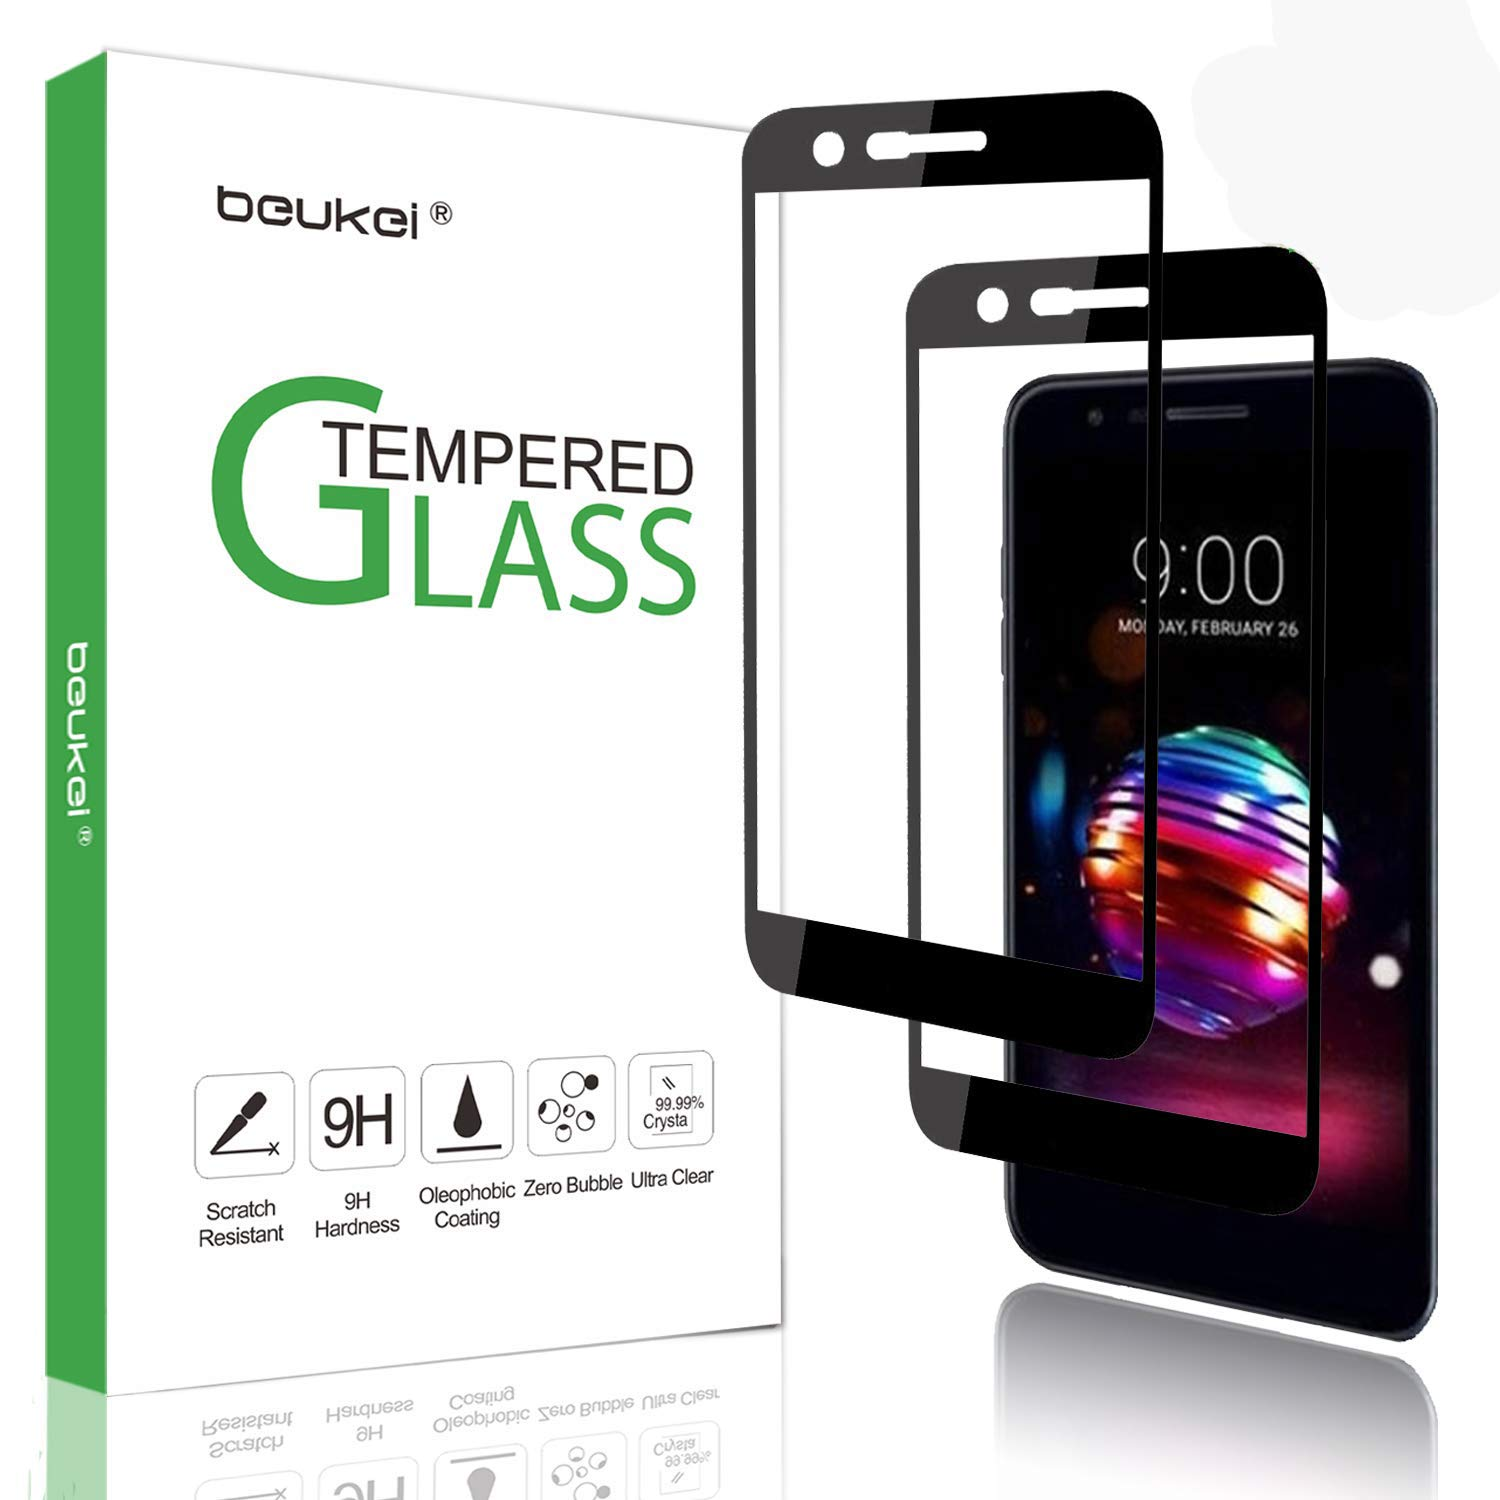 (2 Pack) Beukei for LG LG K30/ Phoenix Plus (AT&T)/ K10 2018 / K10 Plus 2018 / K10 Alpha 2018 Tempered Glass Screen Protector, 2.5D Arc Edges 9H Full Coverage,Lifetime Replacement Warranty